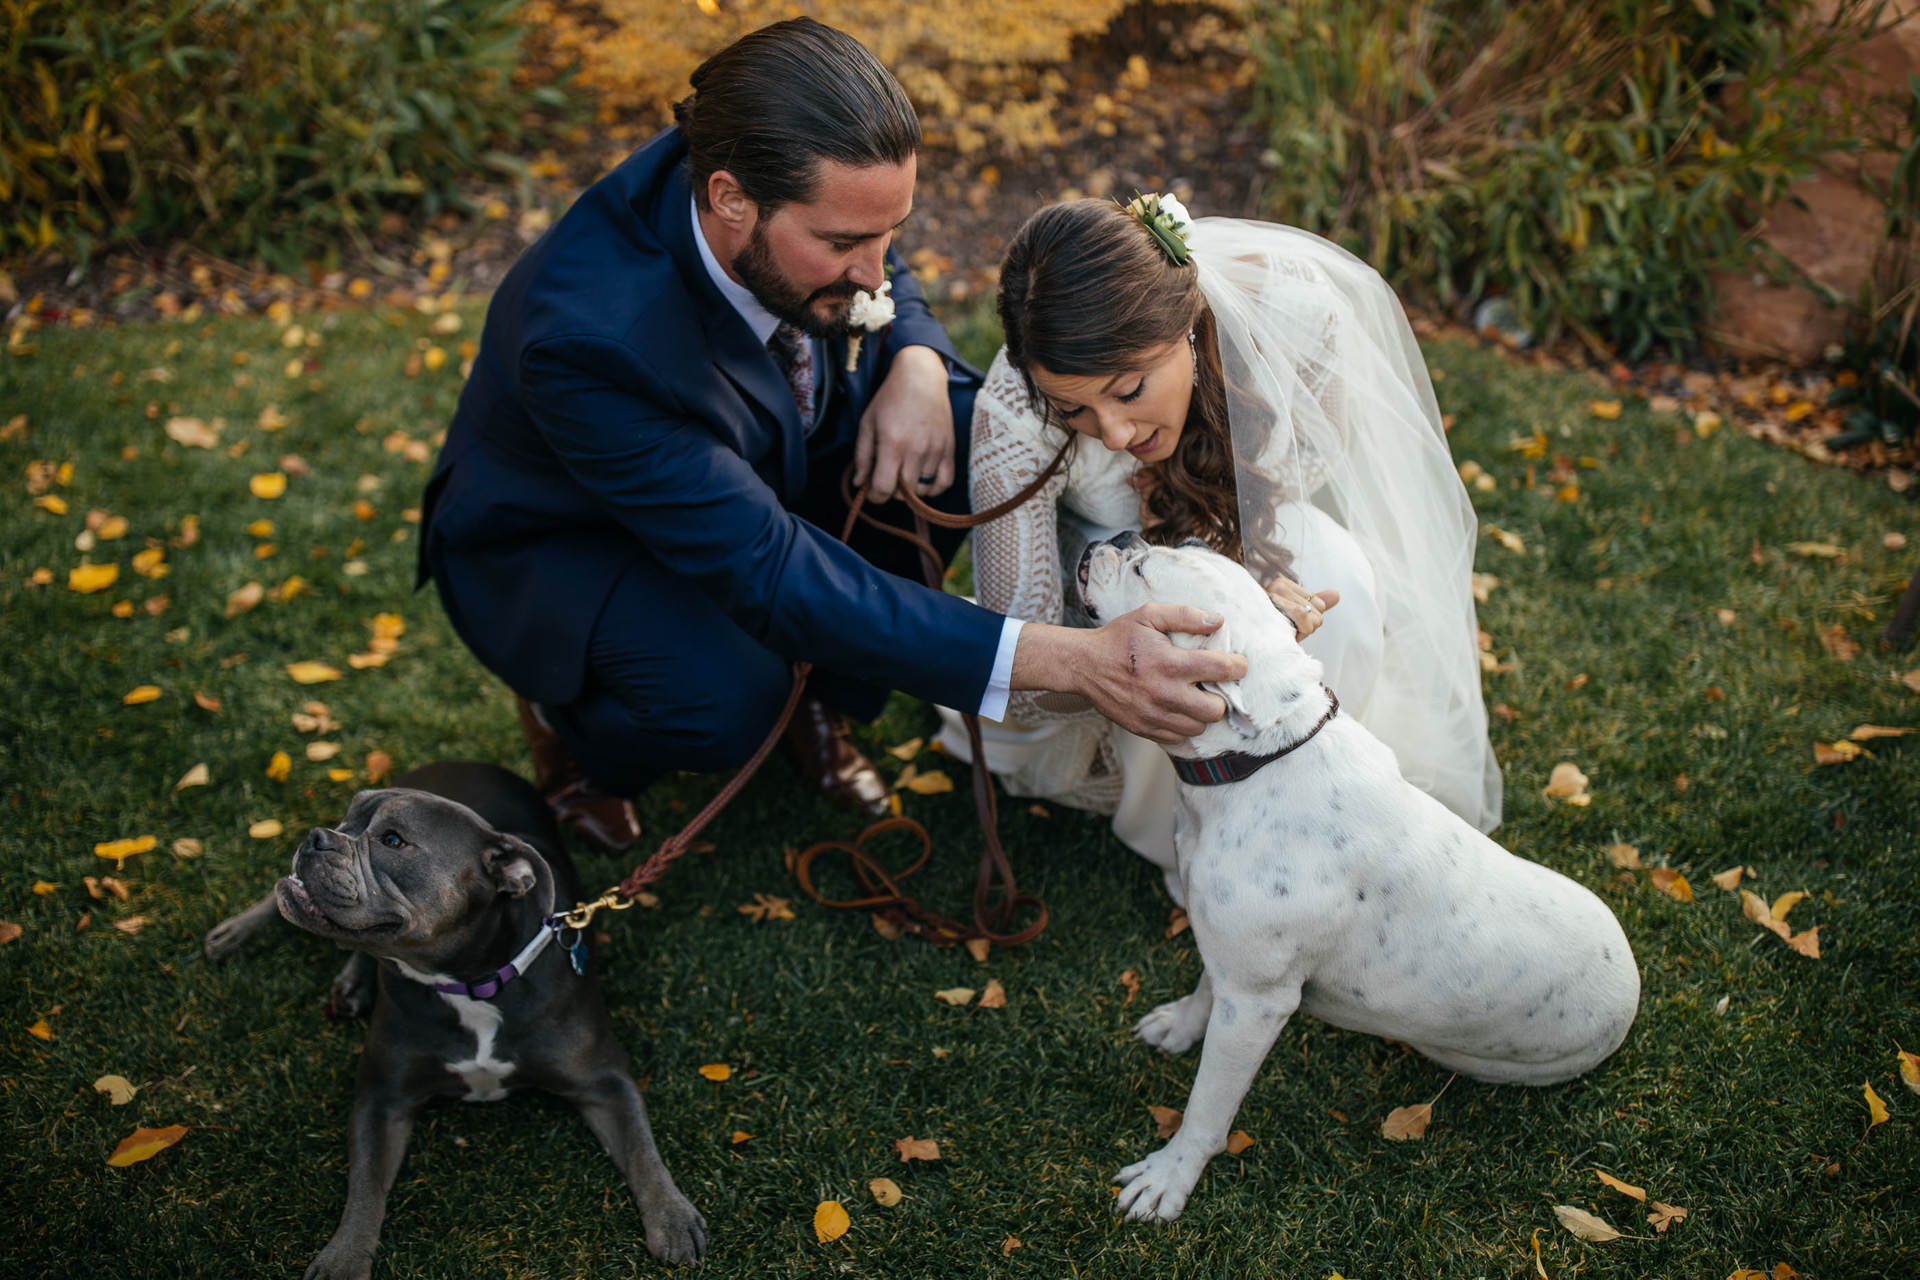 Louland Falls pet friendly wedding venue